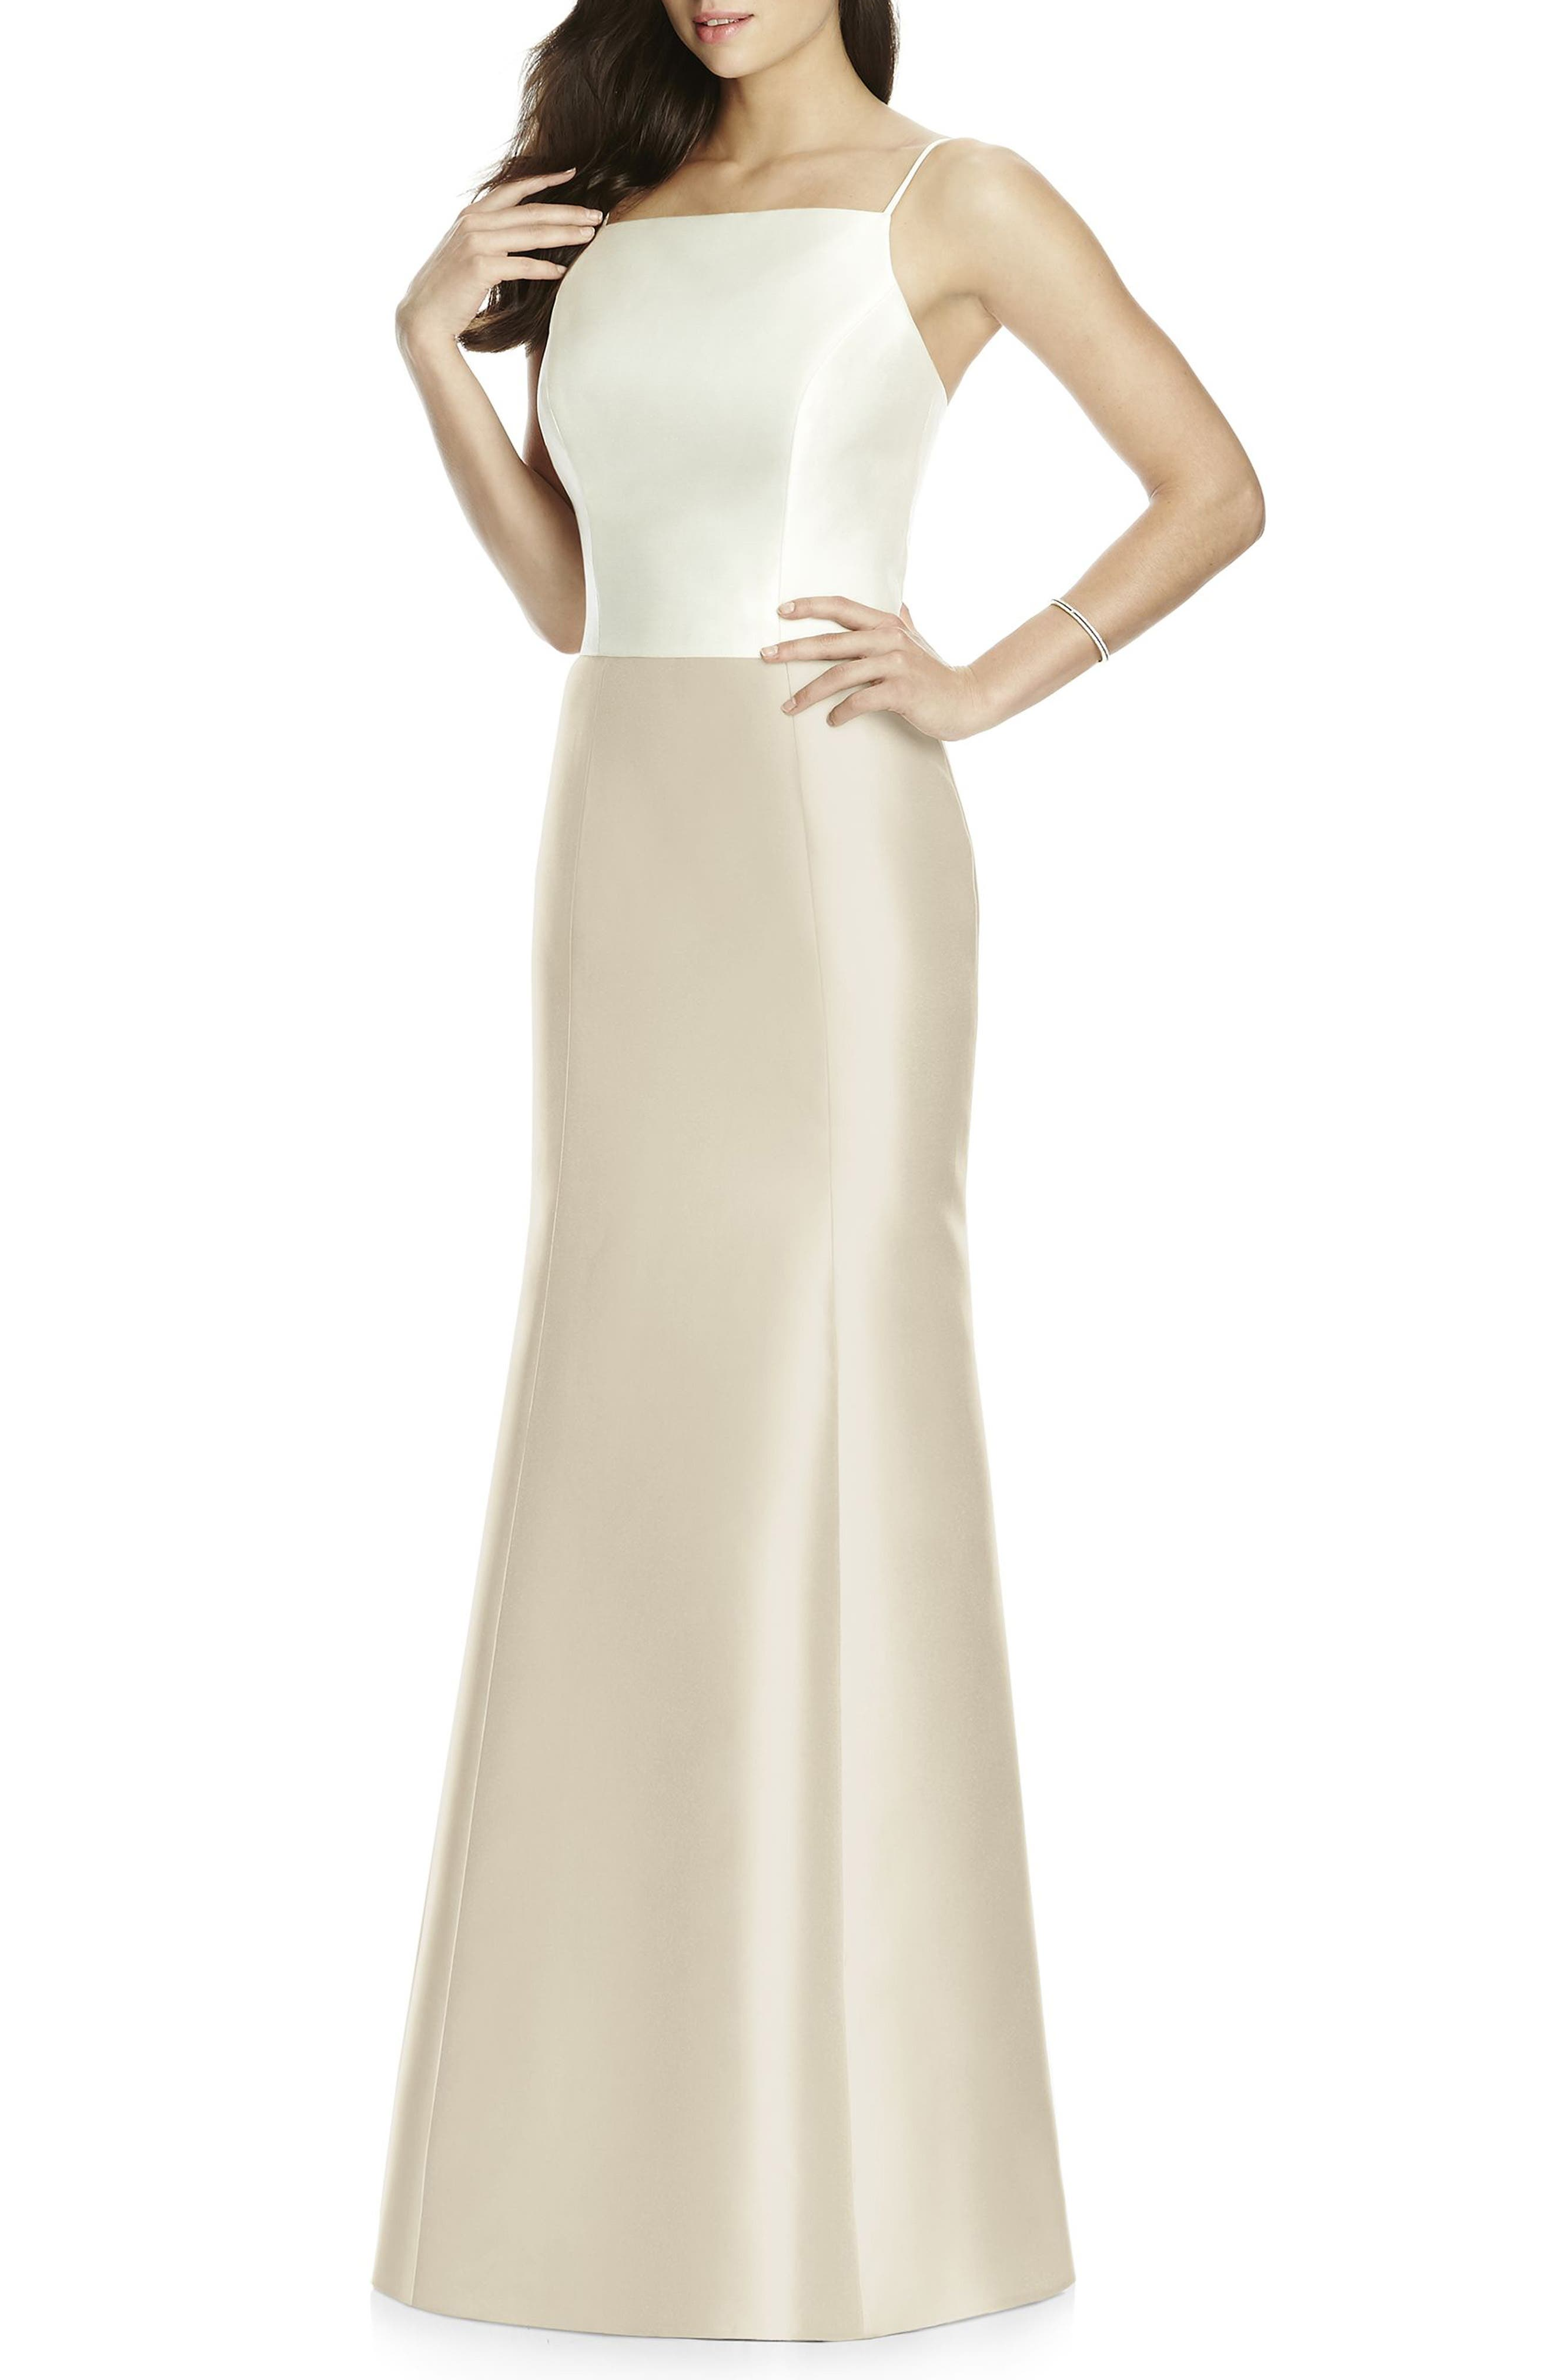 1960s Evening Dresses, Bridesmaids, Mothers Gowns Womens Dessy Collection Sateen Twill Mermaid Skirt Size 10 - Beige $136.00 AT vintagedancer.com